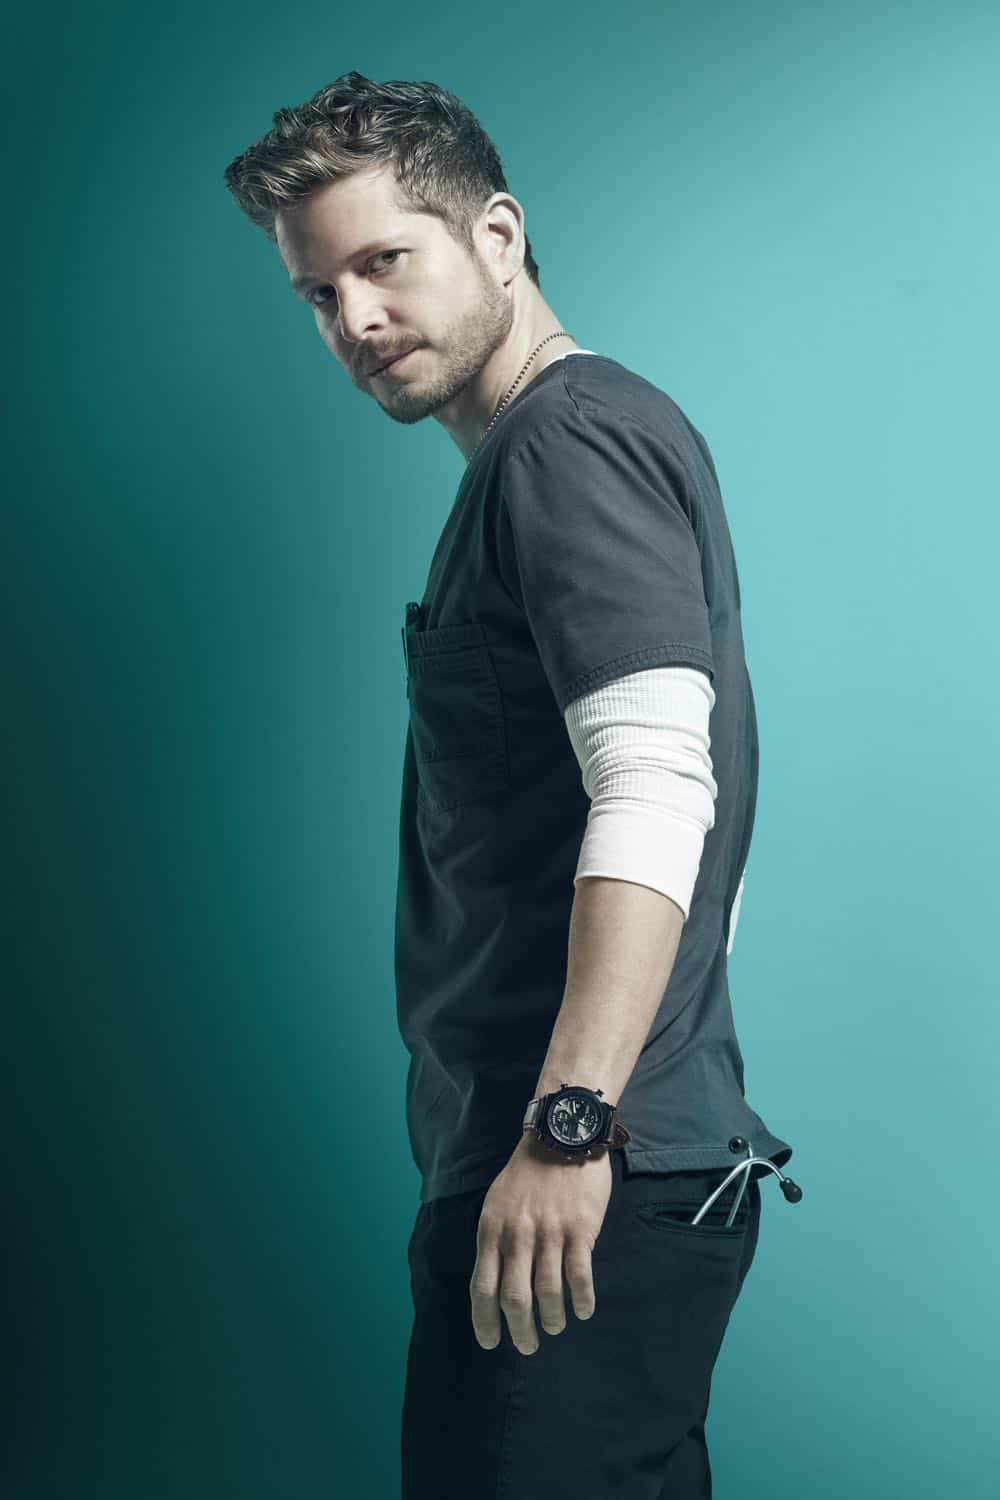 THE RESIDENT: Matt Czuchry as Dr. Conrad Hawkins in the second season of THE RESIDENT premiering Monday, Sept. 24 (8:00-9:00 PM ET/PT) on FOX. ©2018 Fox Broadcasting Co. Cr: Miranda Penn Turin/FOX